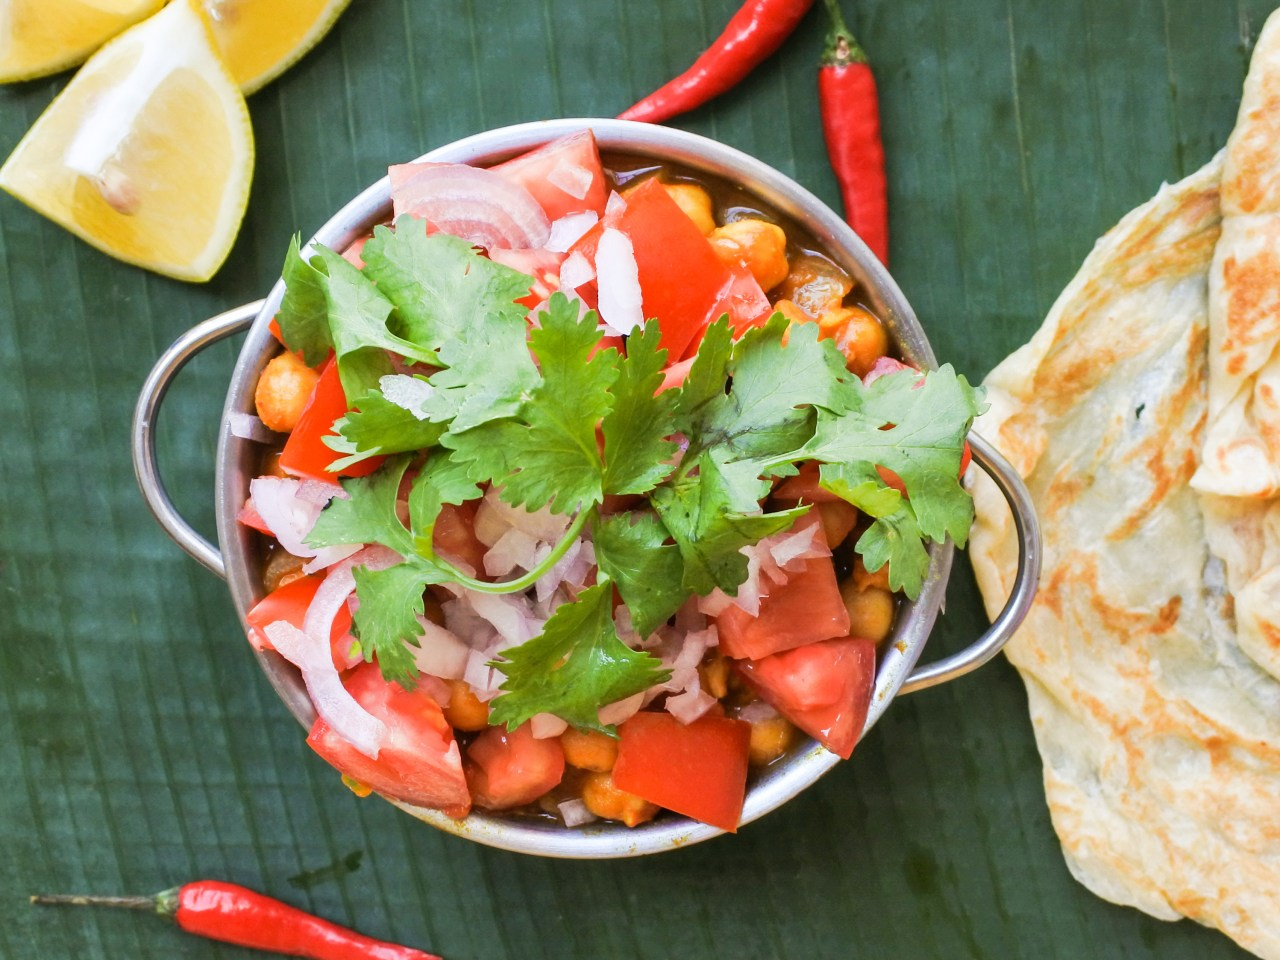 A bowl of curried chickpeas garnished with chopped tomatoes, red onions and cilantro served alongside lemon wedges, red chiles and roti